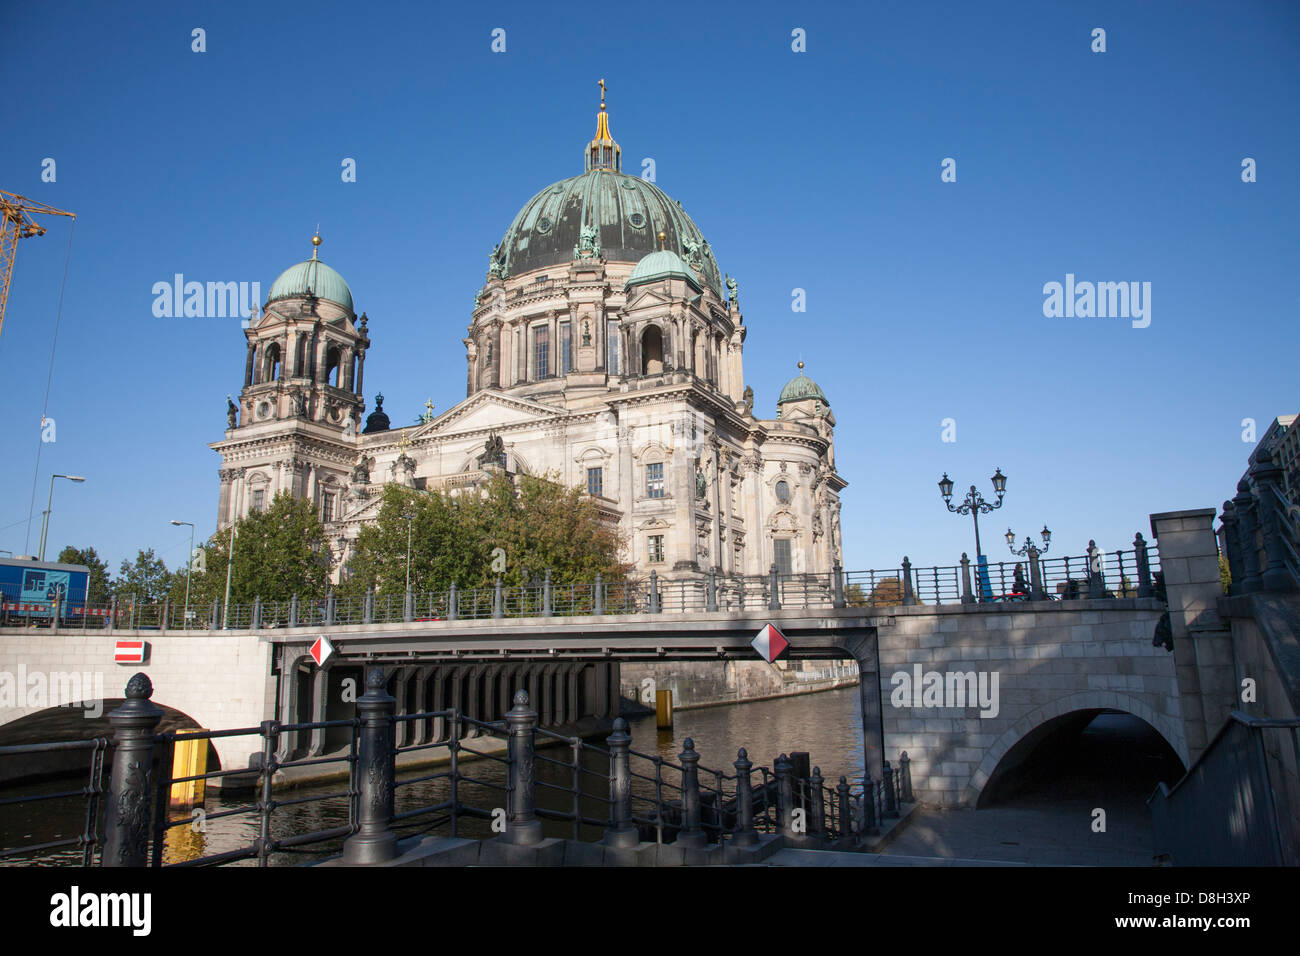 Berliner Dom cathedral, Berlin, Germany - Stock Image